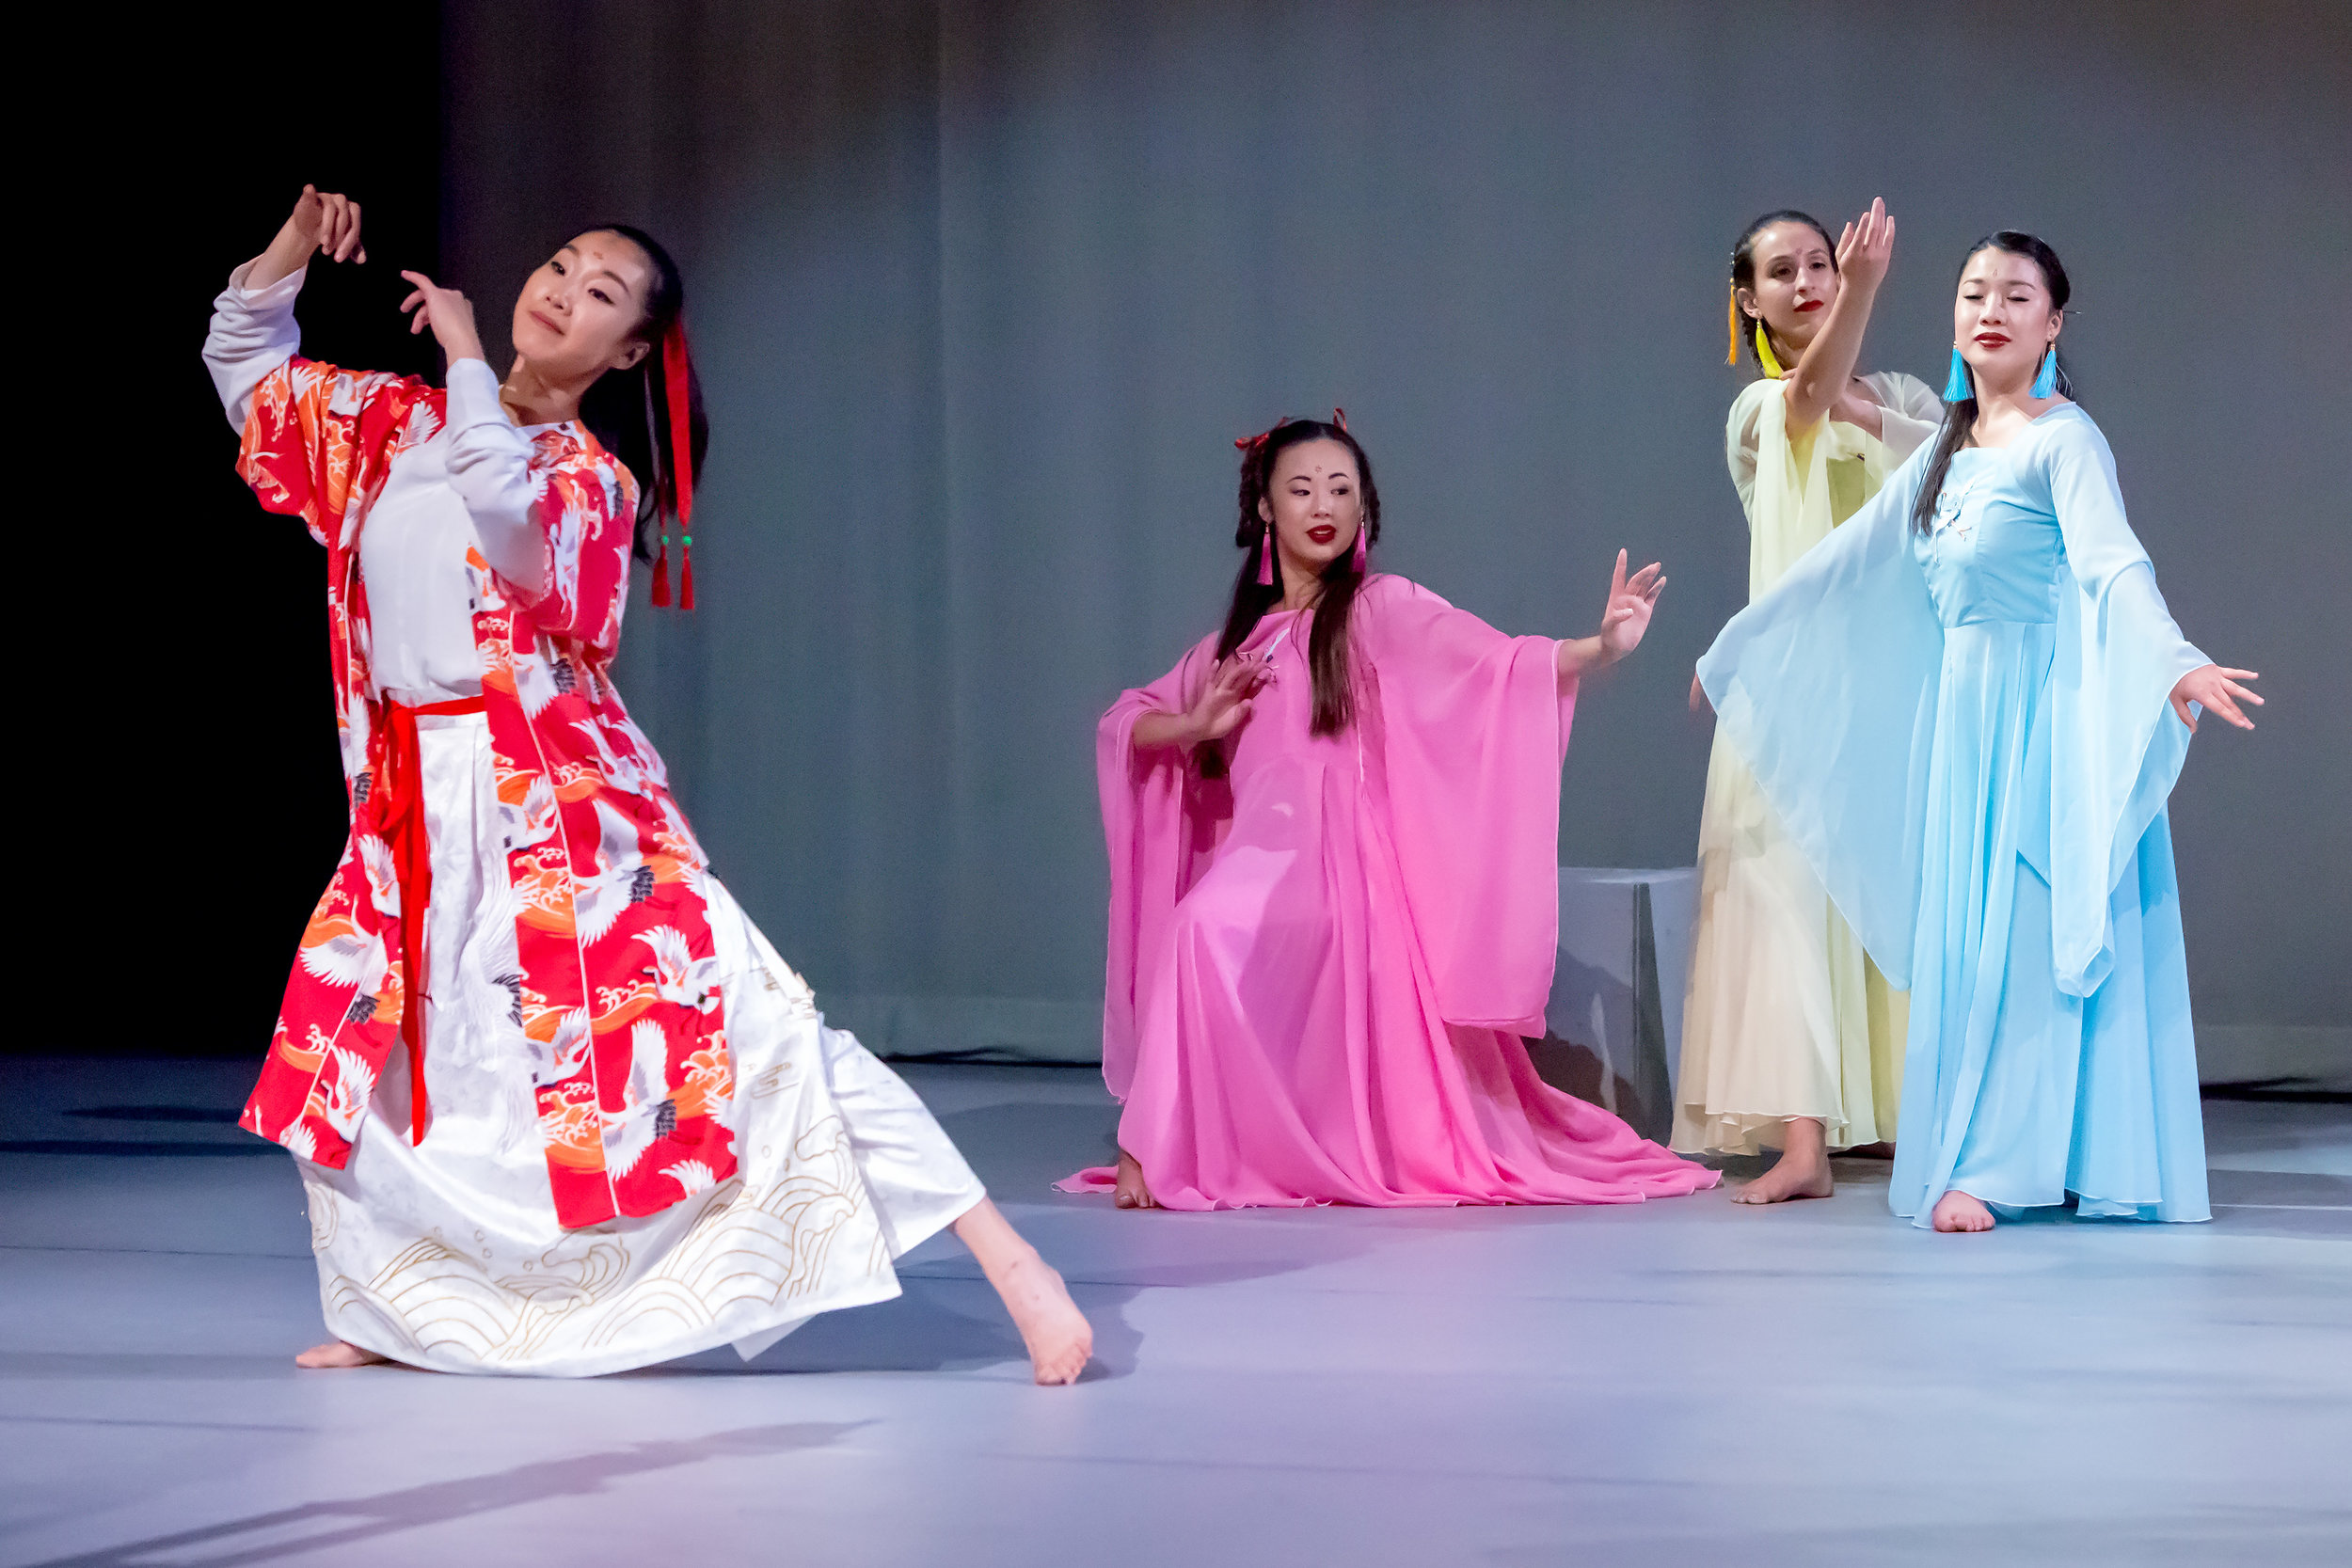 "(L to R) Jingqui Guan (choreographer) plays celestial flute, Kyra Sakamoto, Kelsey Manes, and Mizuki Sako as Cranes in ""Lord of the Cranes"""